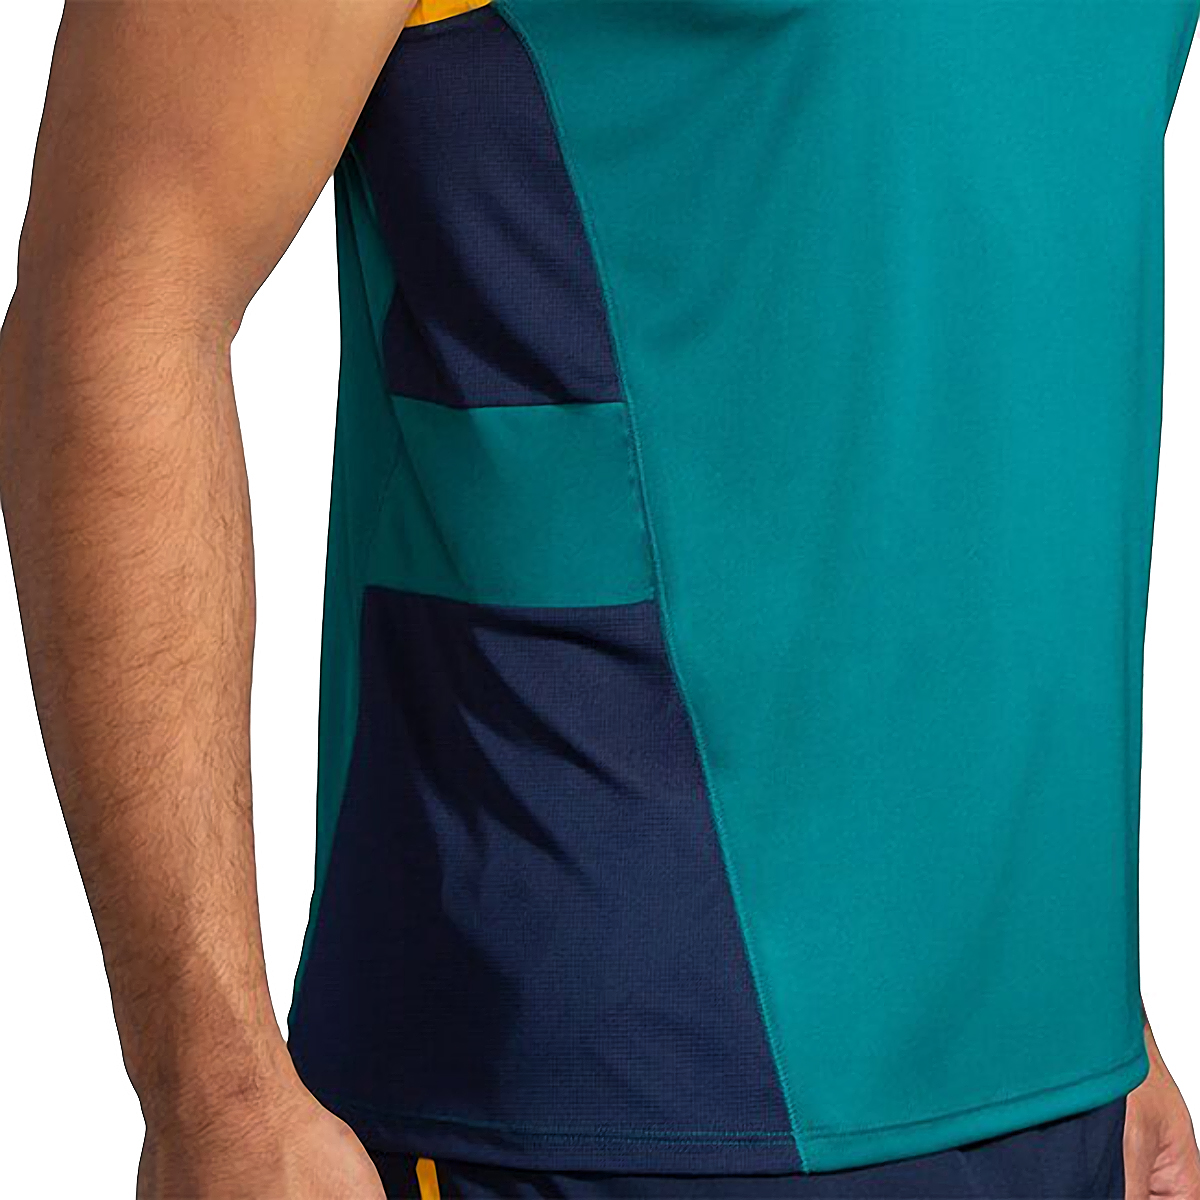 Men's Brooks Stealth Singlet  - Color: Spruce/Navy/Yellow - Size: S, Spruce/Navy/Yellow, large, image 3